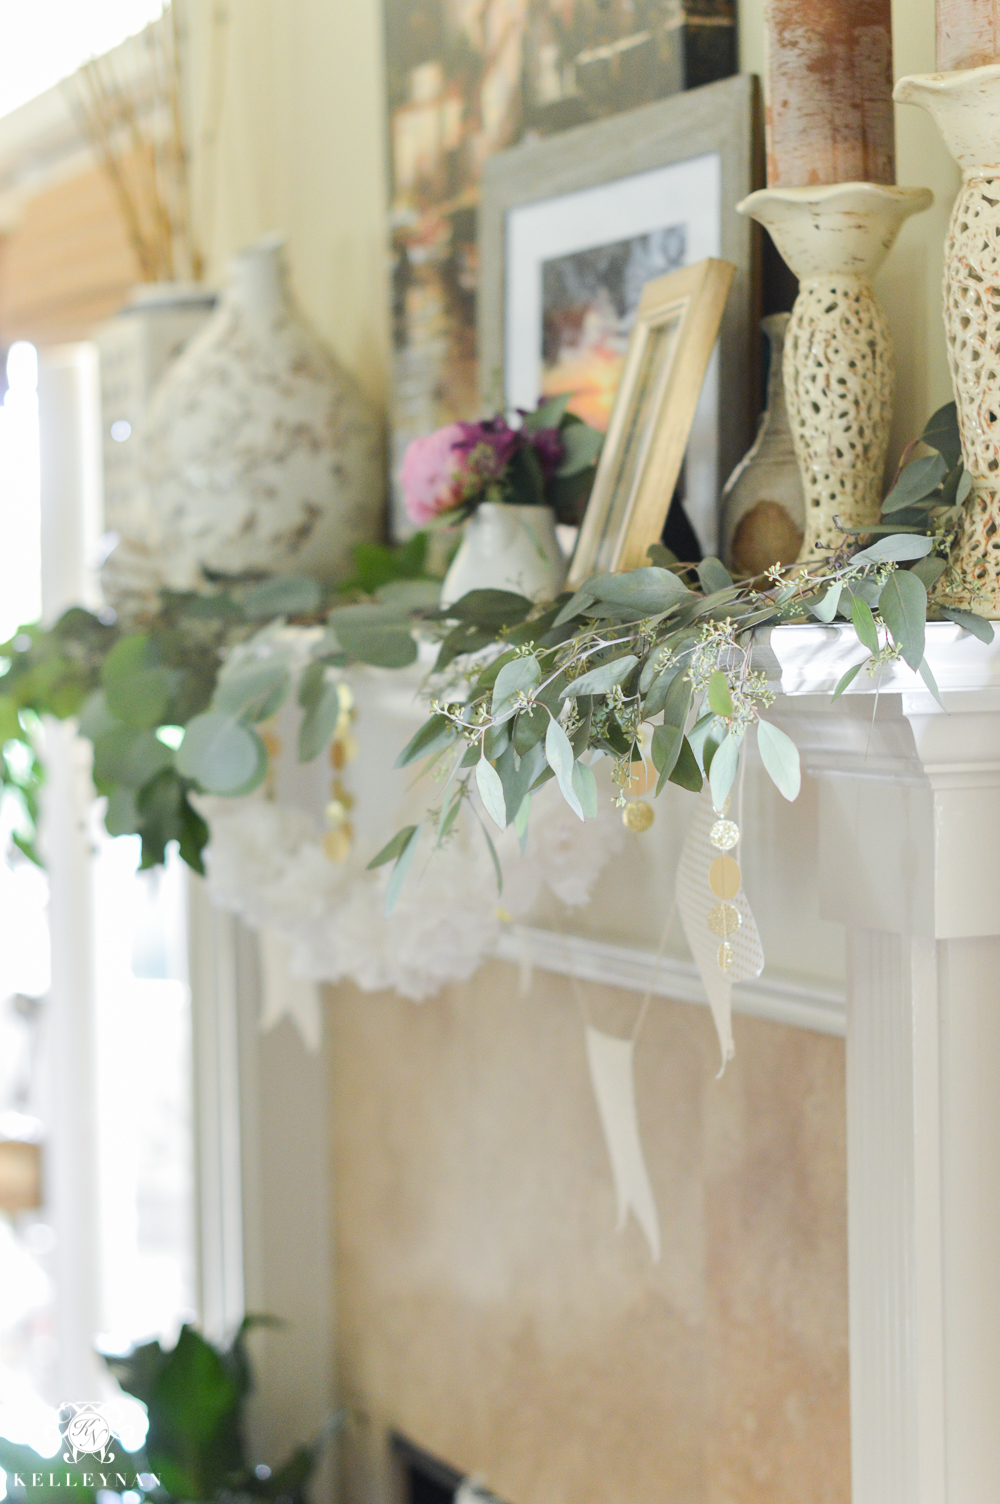 Southern Garden Party Bridal Shower Ideas-fireplace garland with eucalyptus